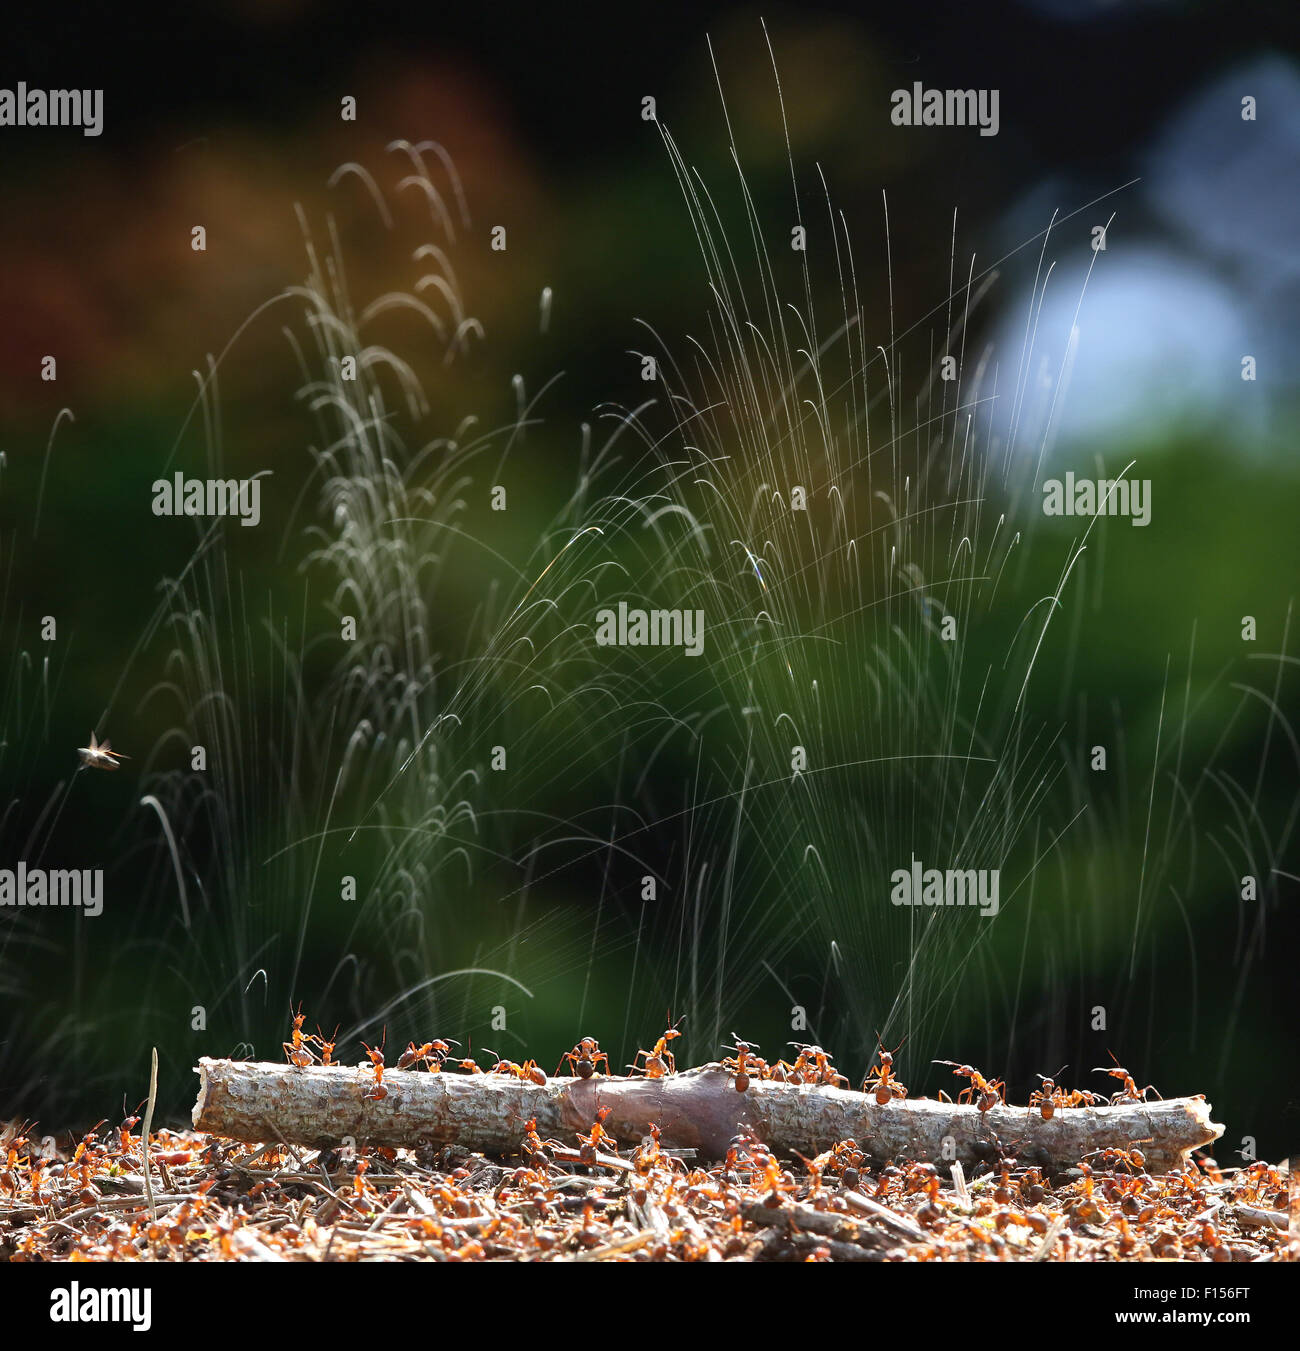 Wood ants (Formica rufa) jetting formic acid to protect their nest. Surrey, England, June. Digital Composite. - Stock Image